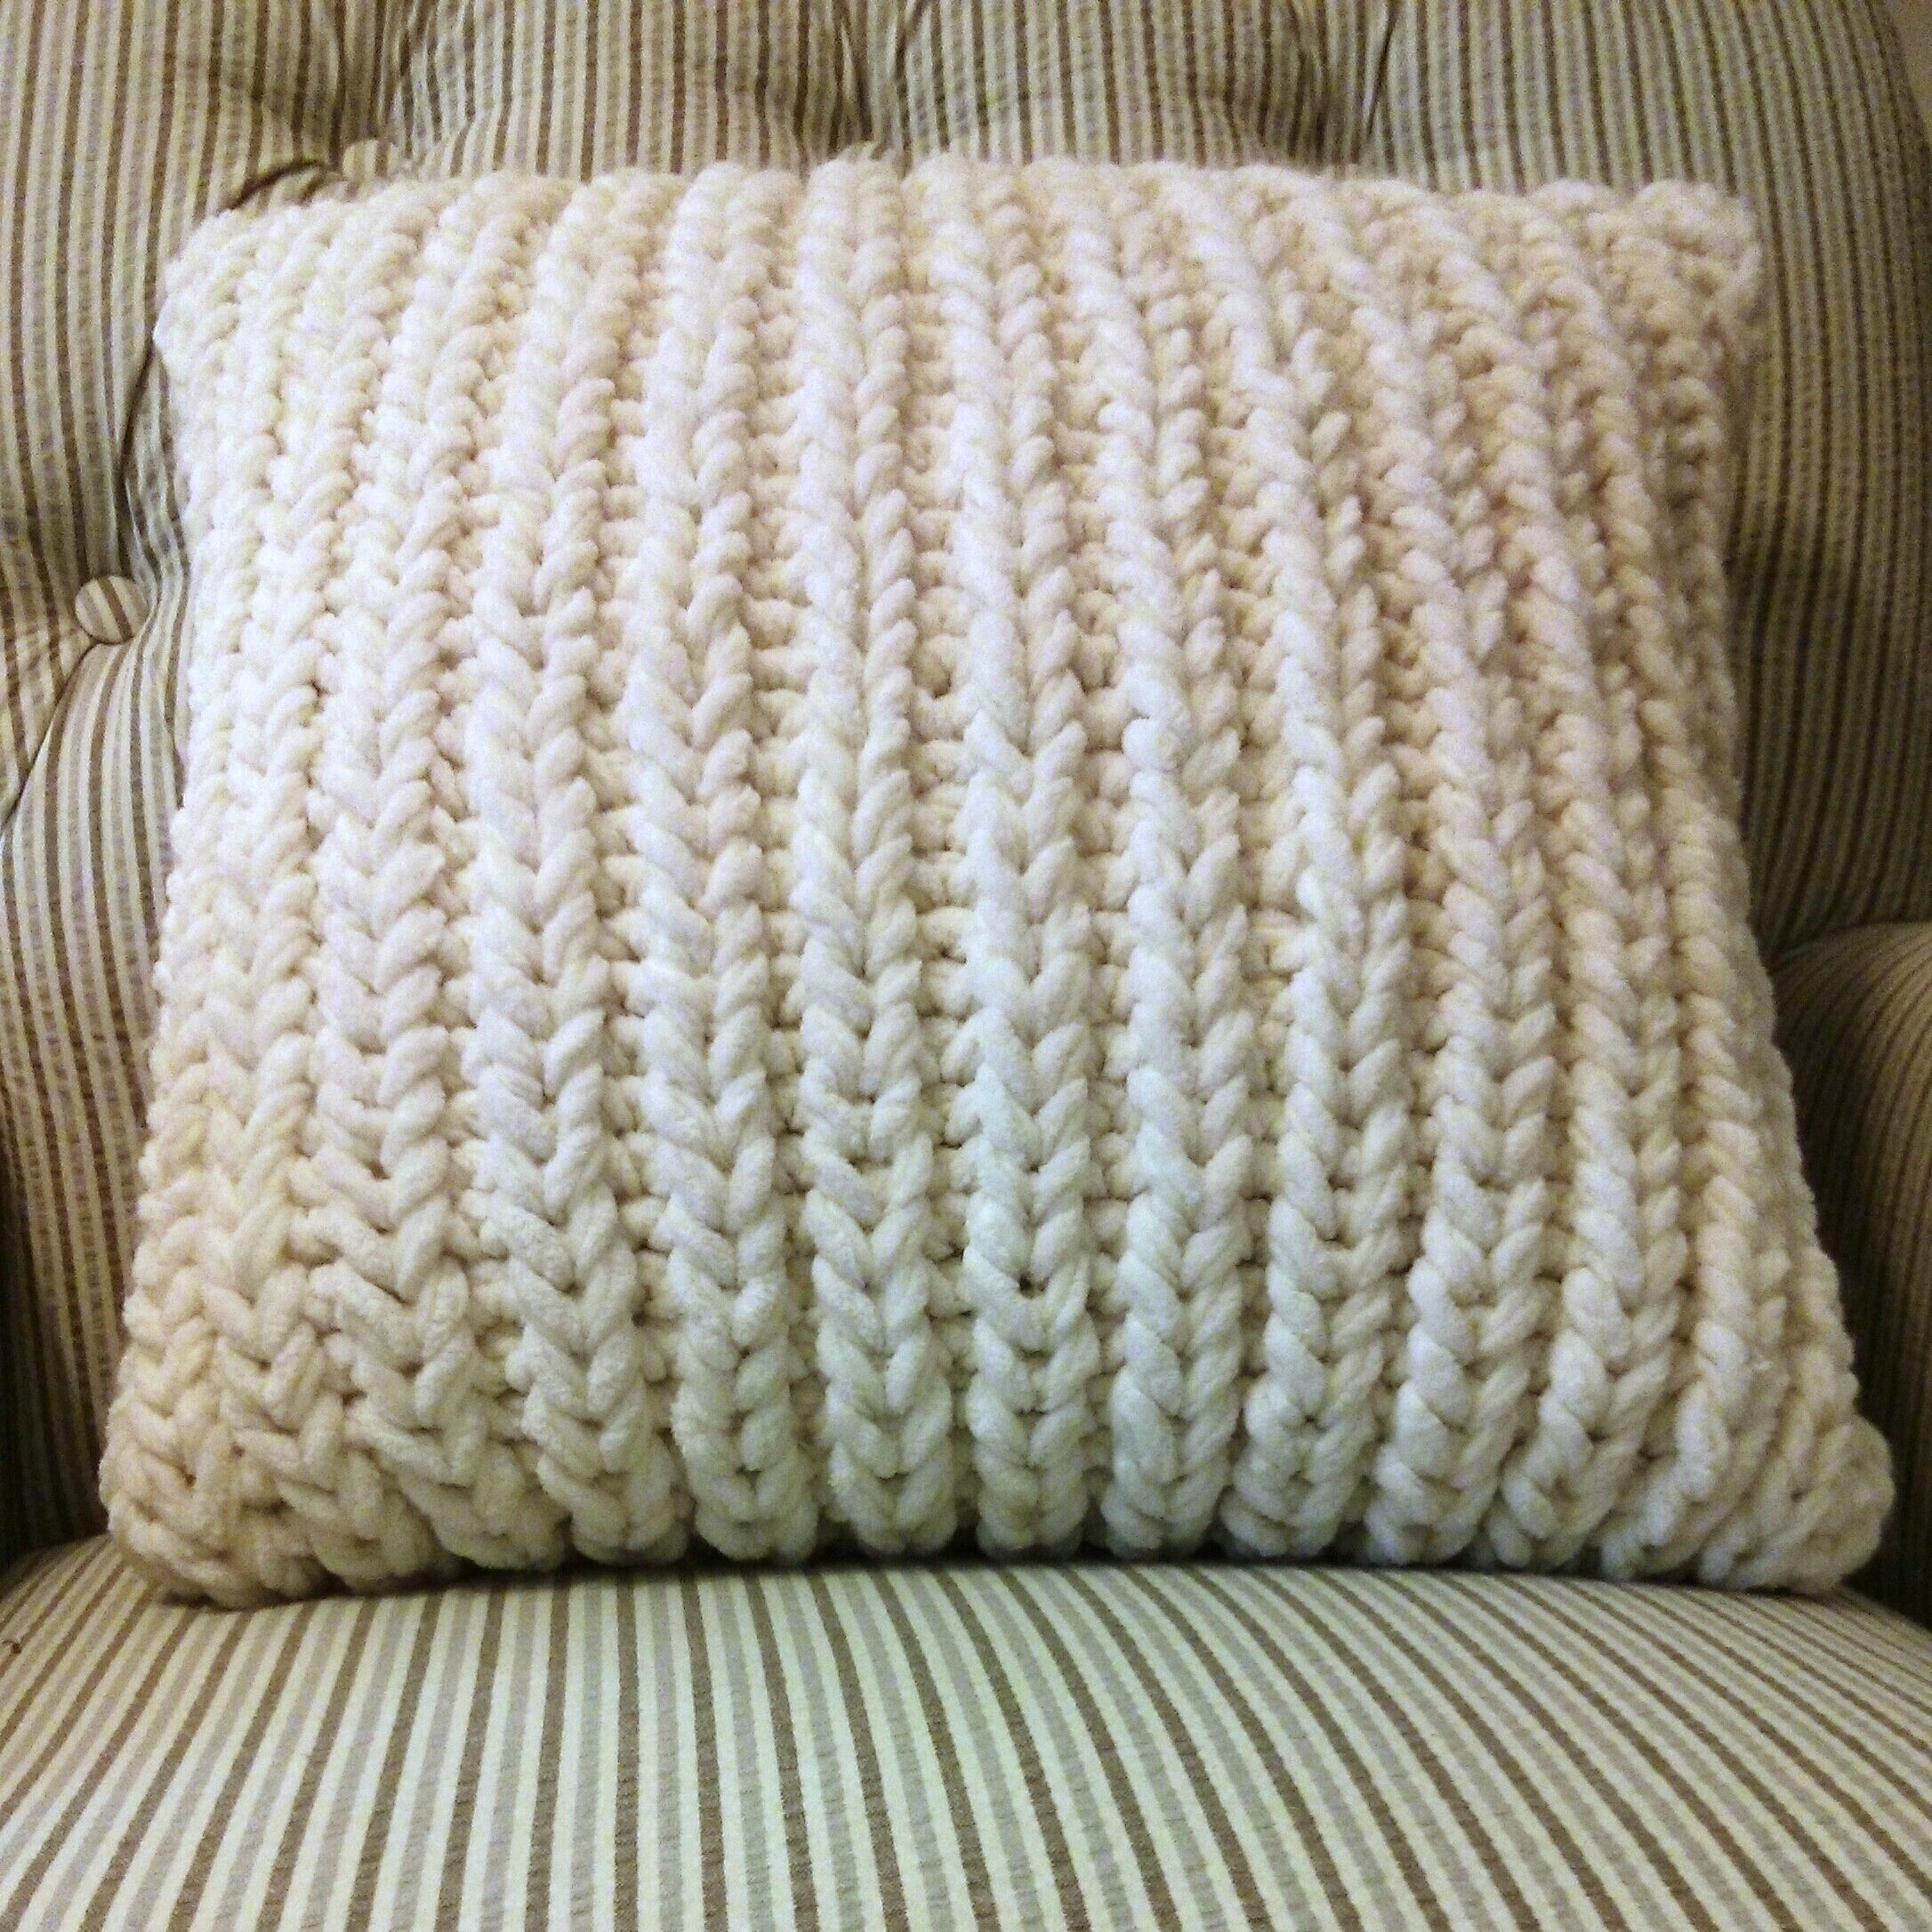 Free Autumn Knitting Patterns To Inspire You | Pillows, Crochet and ...